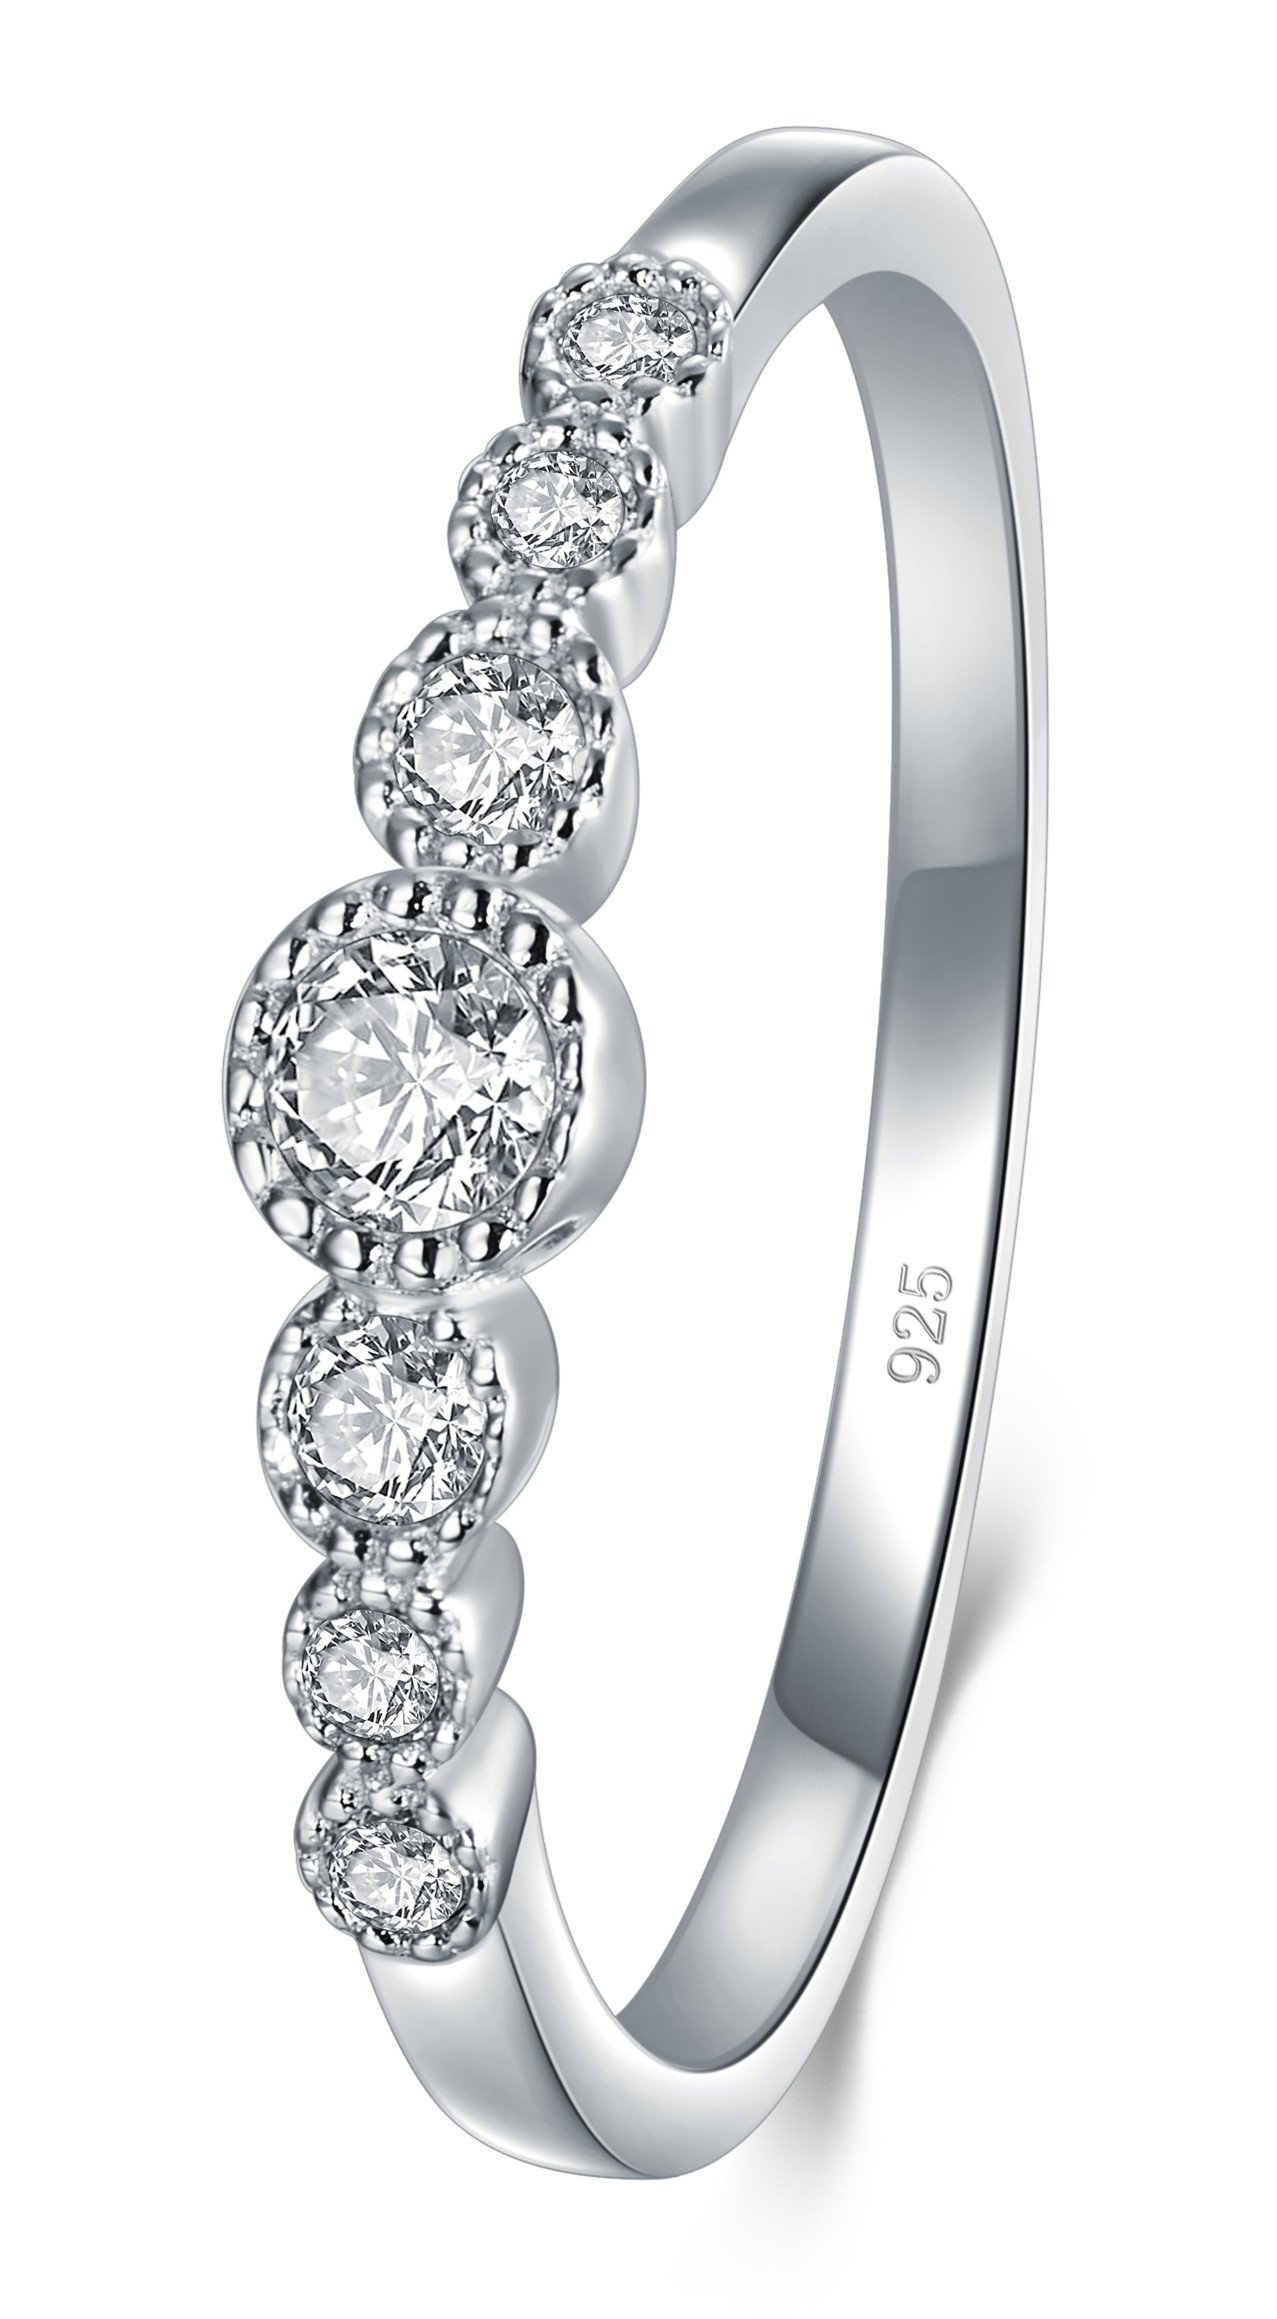 d9d81cc27 BORUO 925 Sterling Silver Ring, Cubic Zirconia CZ Diamond Eternity  Engagement Wedding Band Ring product